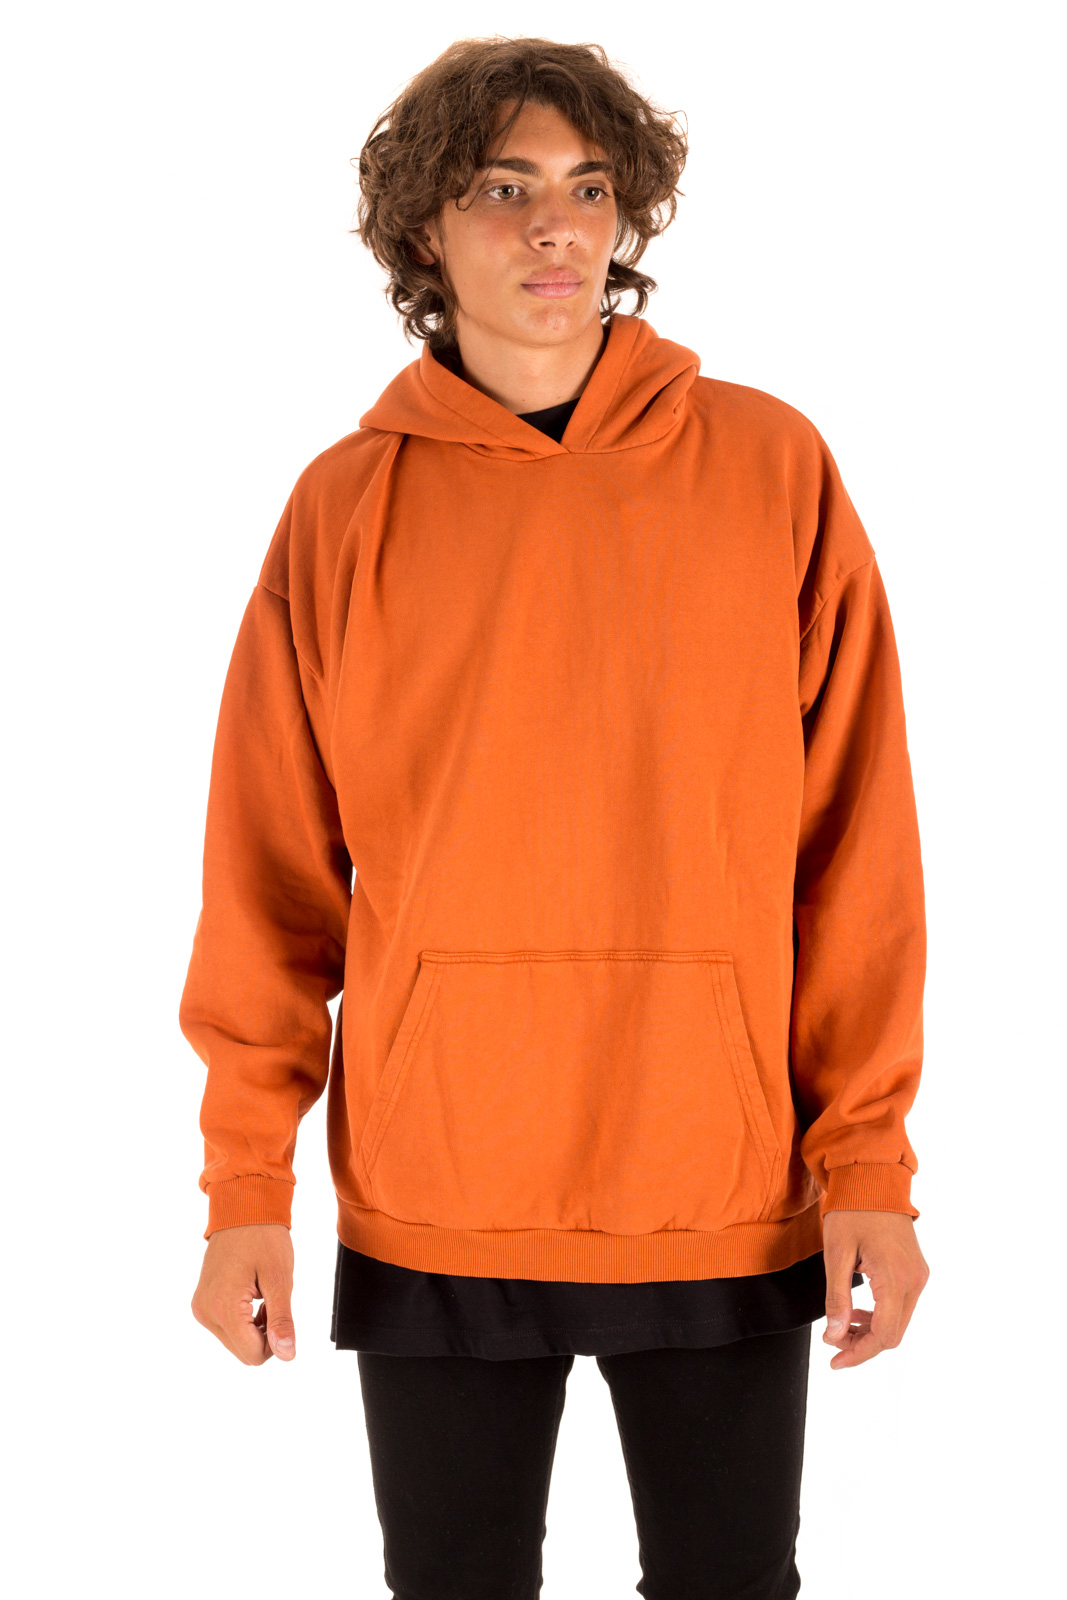 Paura - MIRROR Orange Sweatshirt Richard